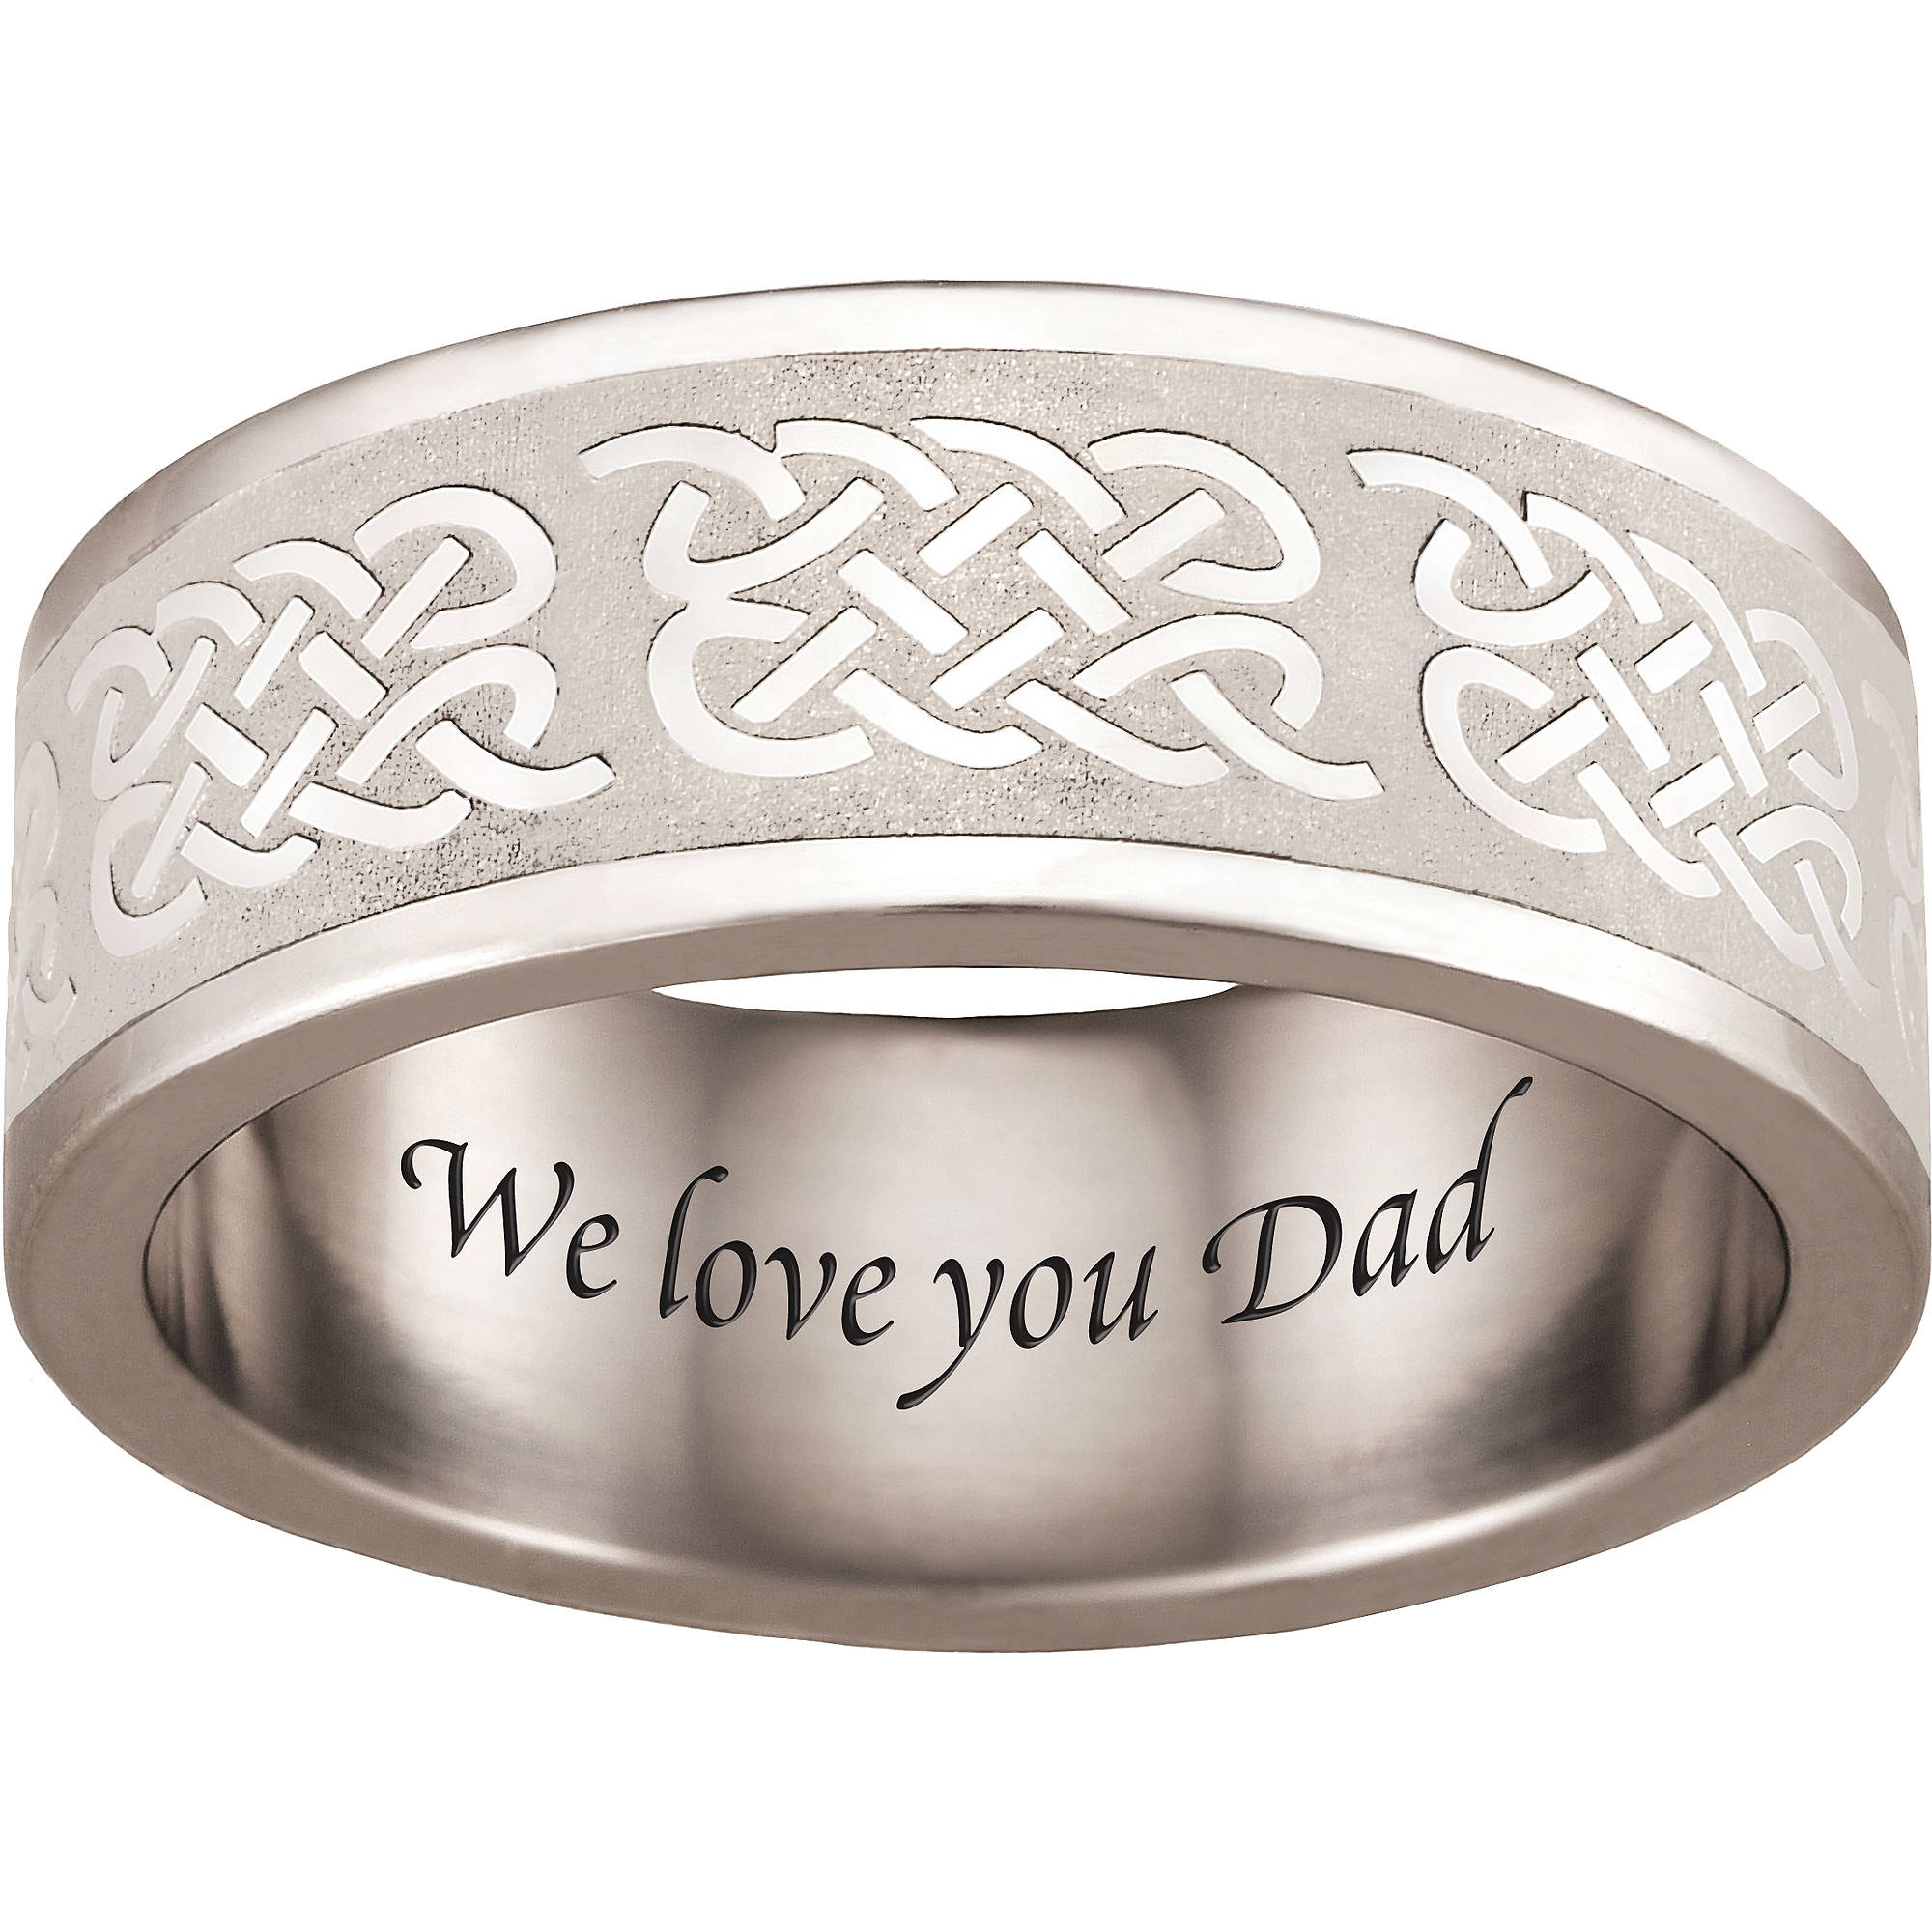 Personalized Keepsake Stainless-Steel Men's Celtic Ring